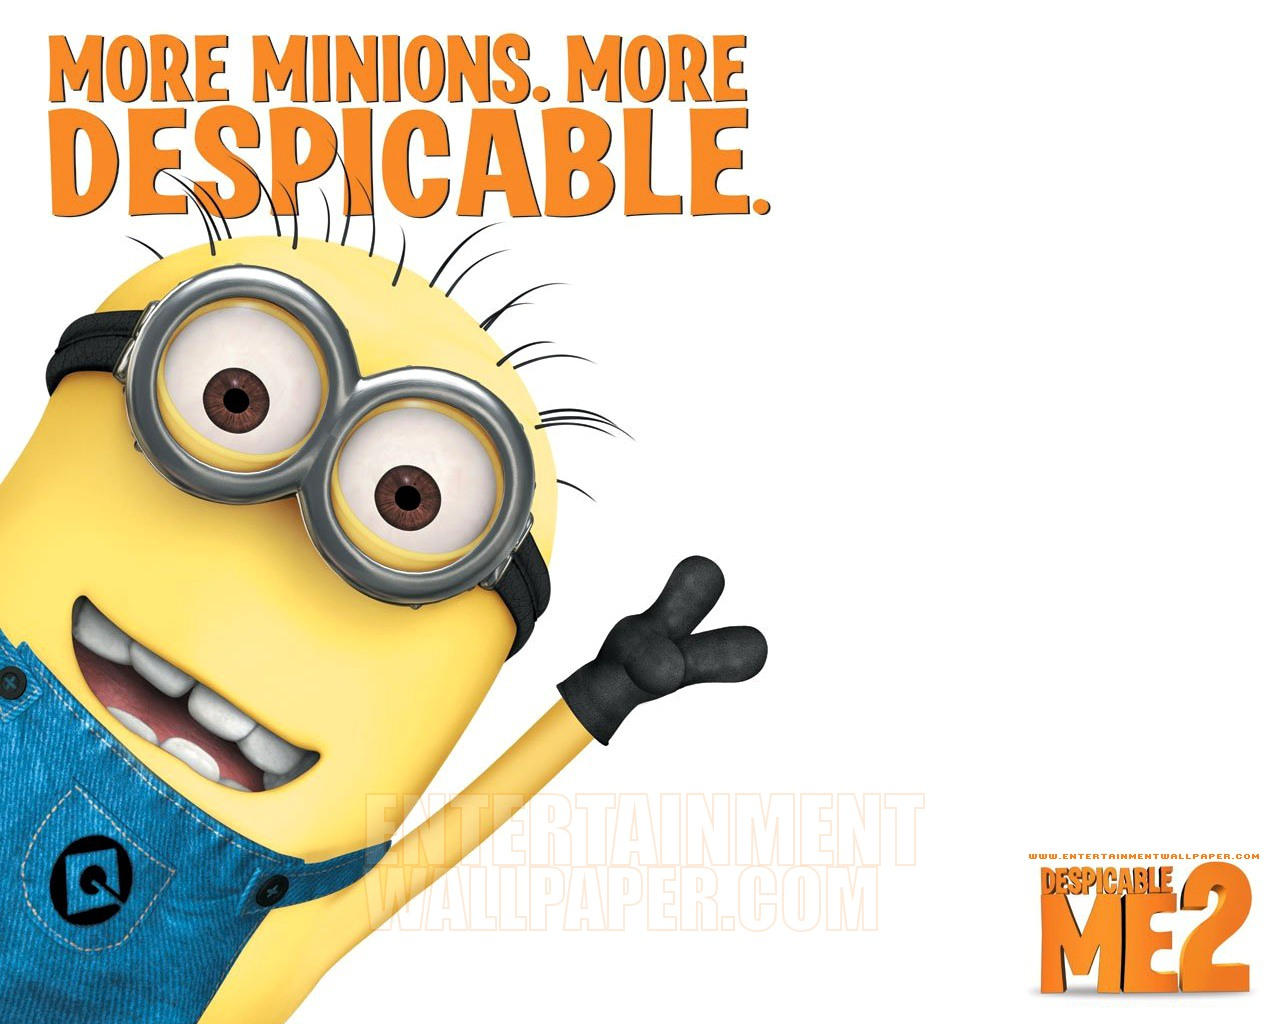 Despicable Me Hd Wallpaper Group